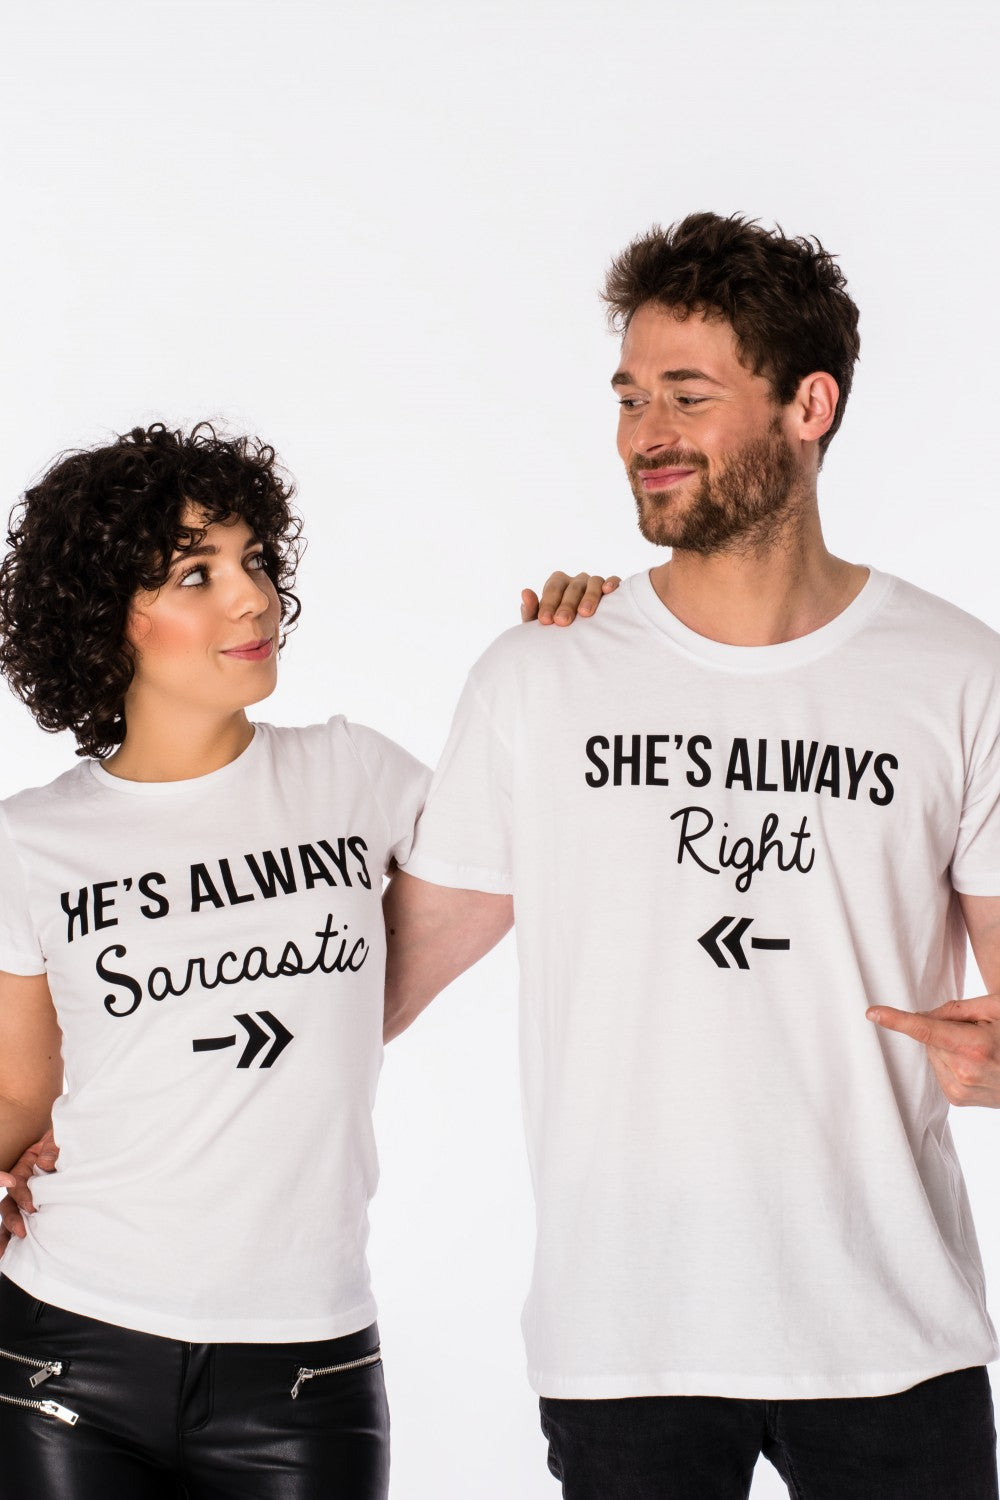 """Sarcastic - Right"" T-shirt for couples"